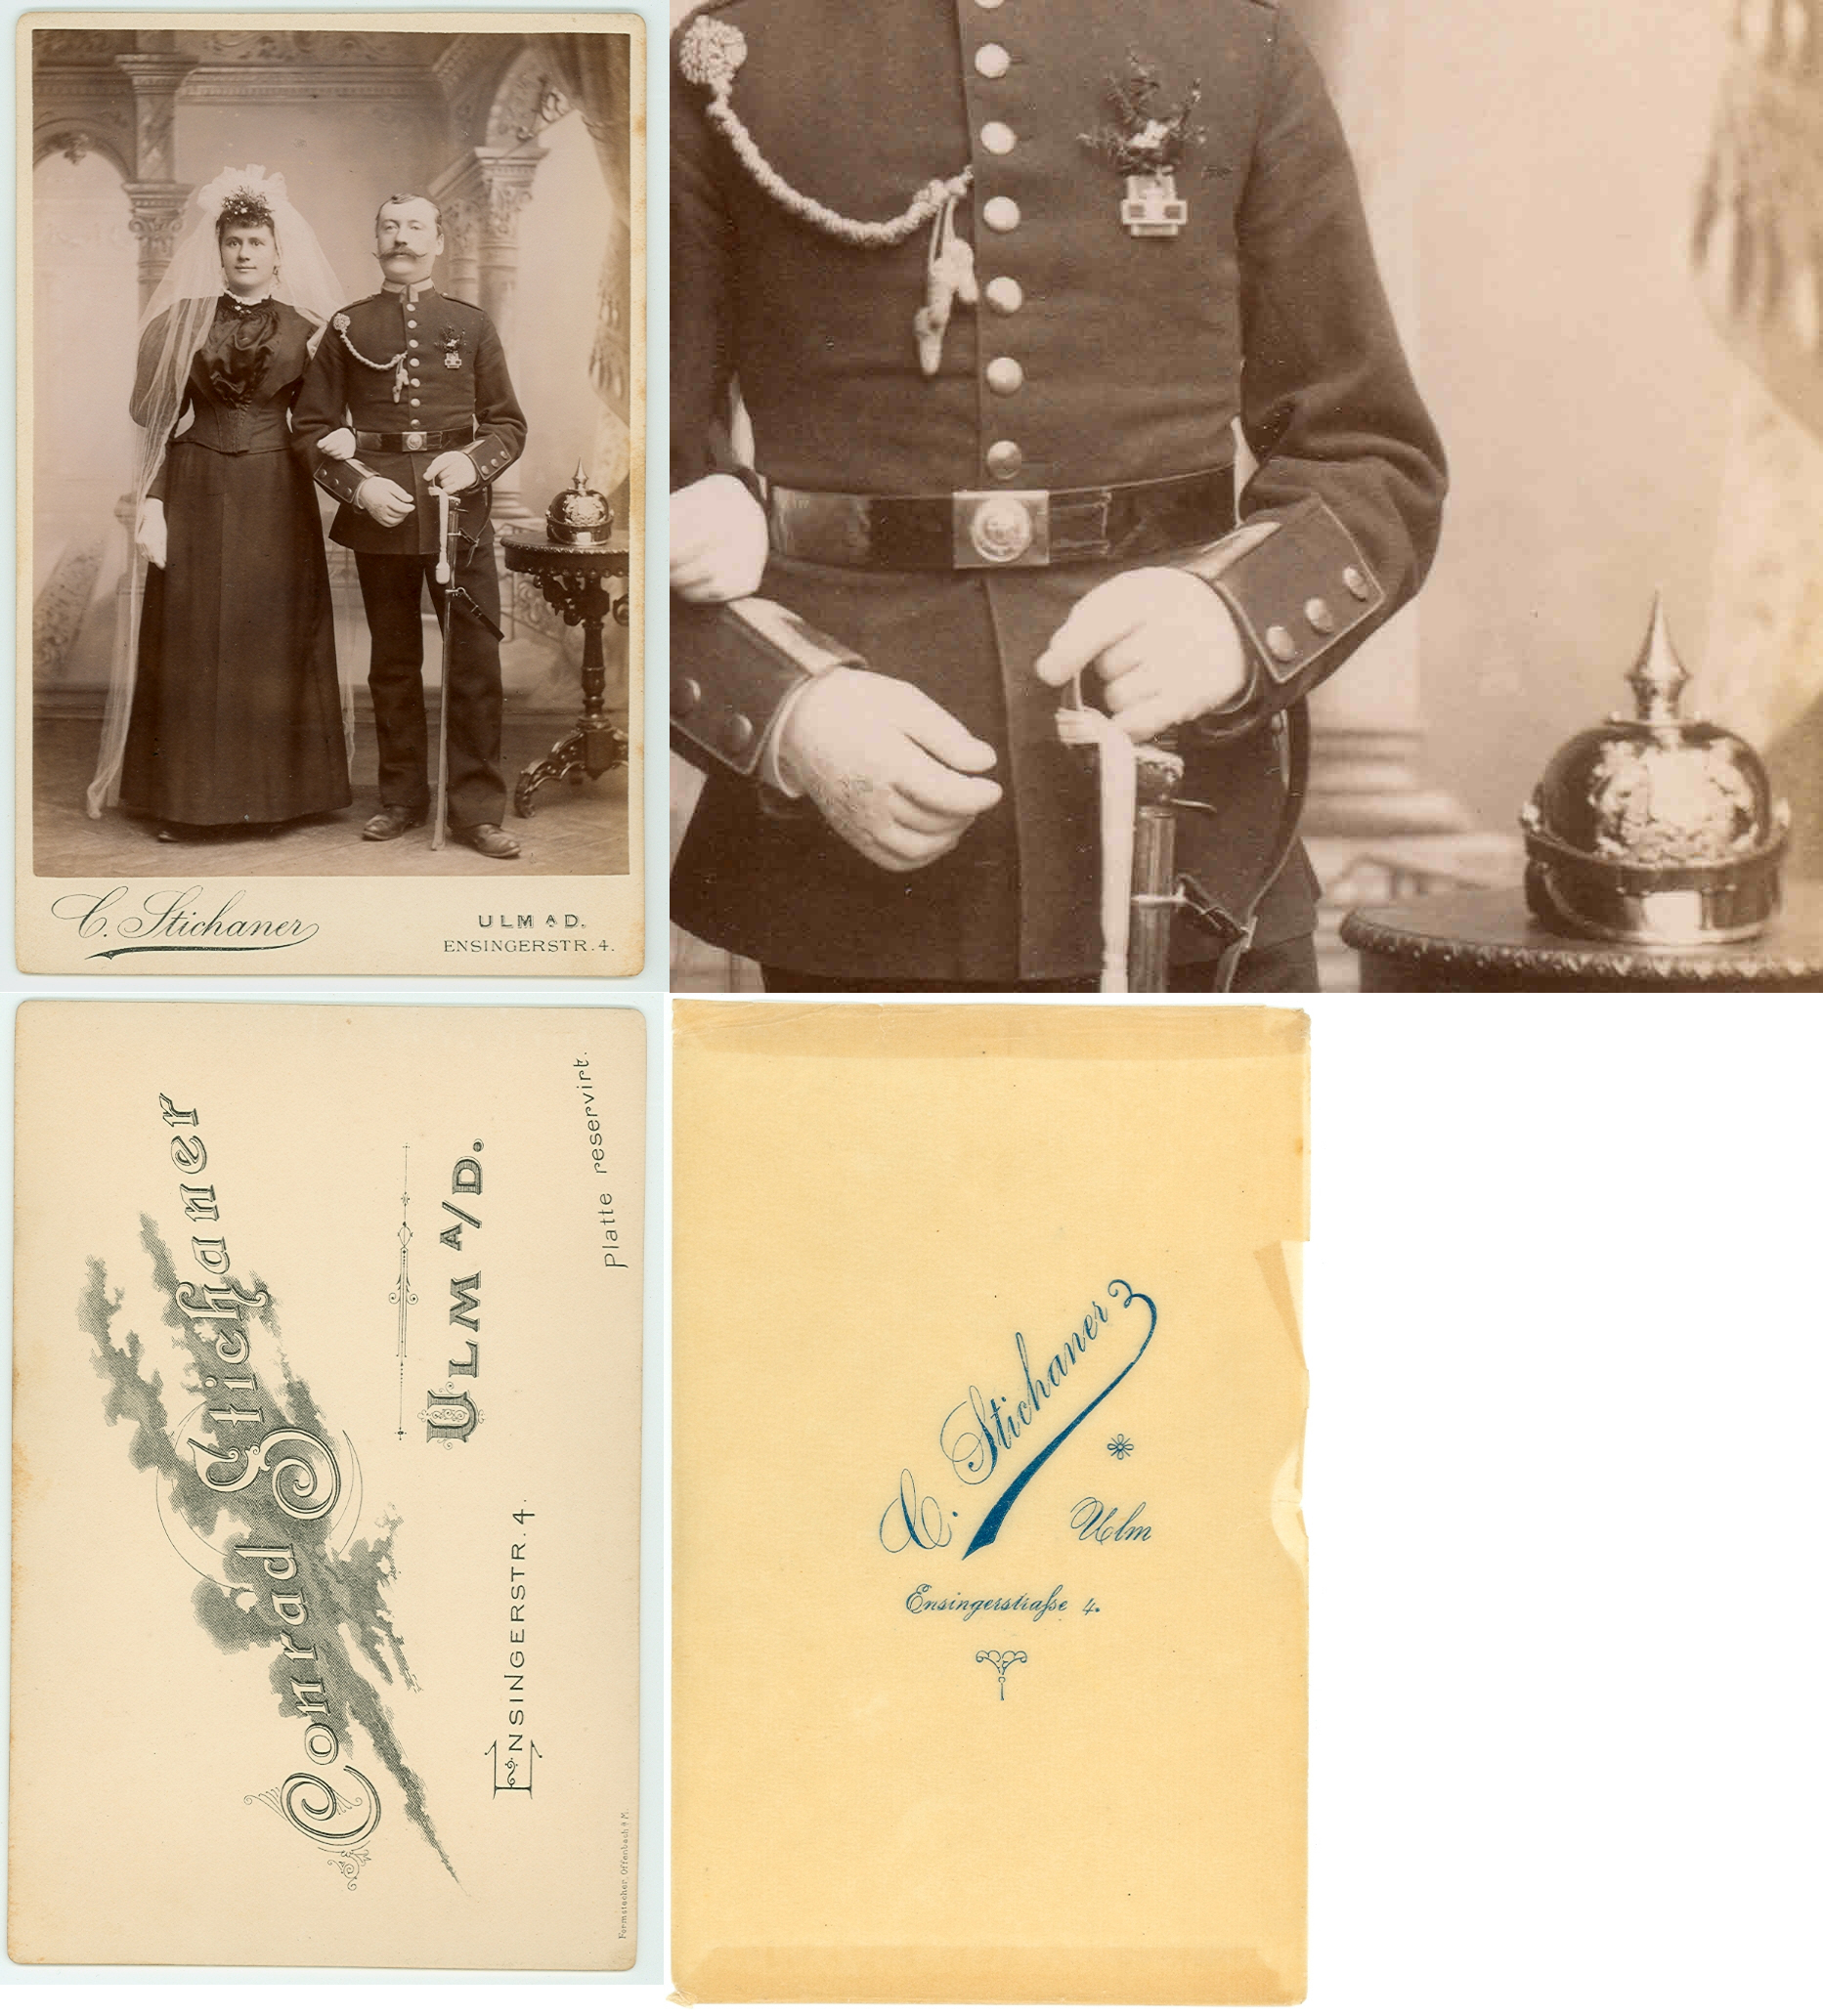 cdv ulm soldato ufficiale guardia con piccone casco sciabole phot conrad stichaner 1900 ebay. Black Bedroom Furniture Sets. Home Design Ideas